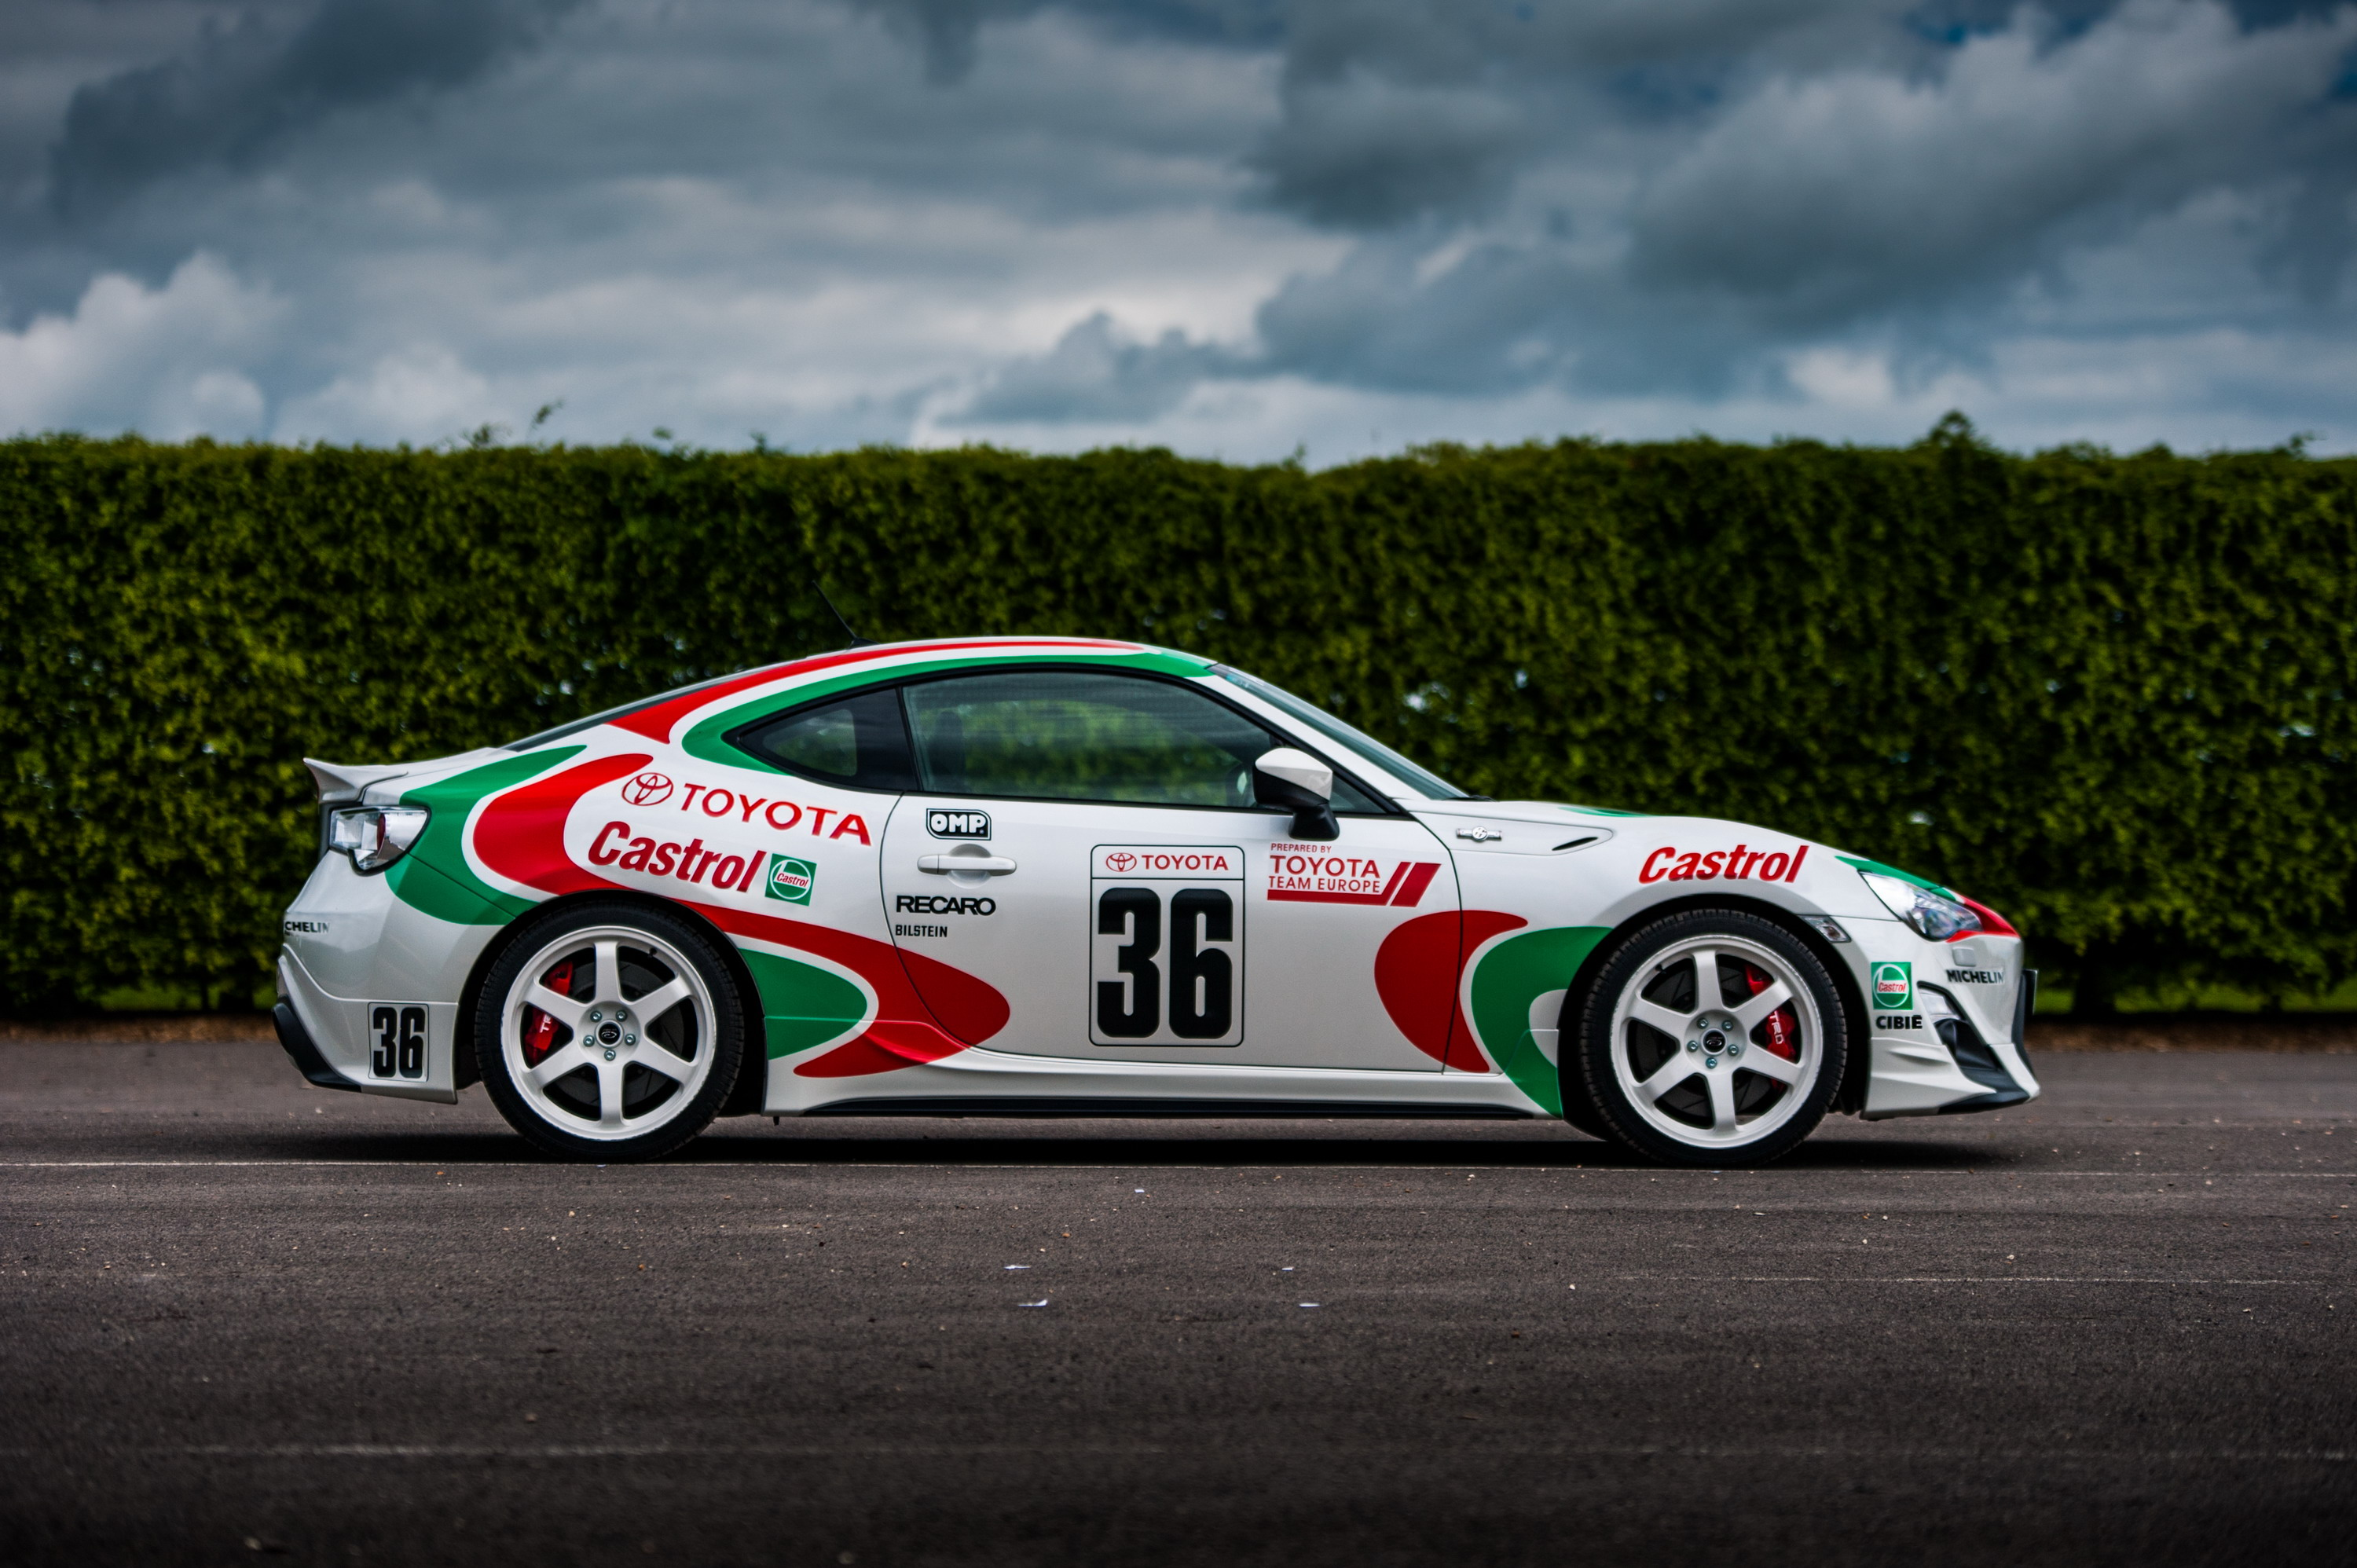 Toyota Pays Tribute To Its Heritage With One-Off Classic Liveries ...